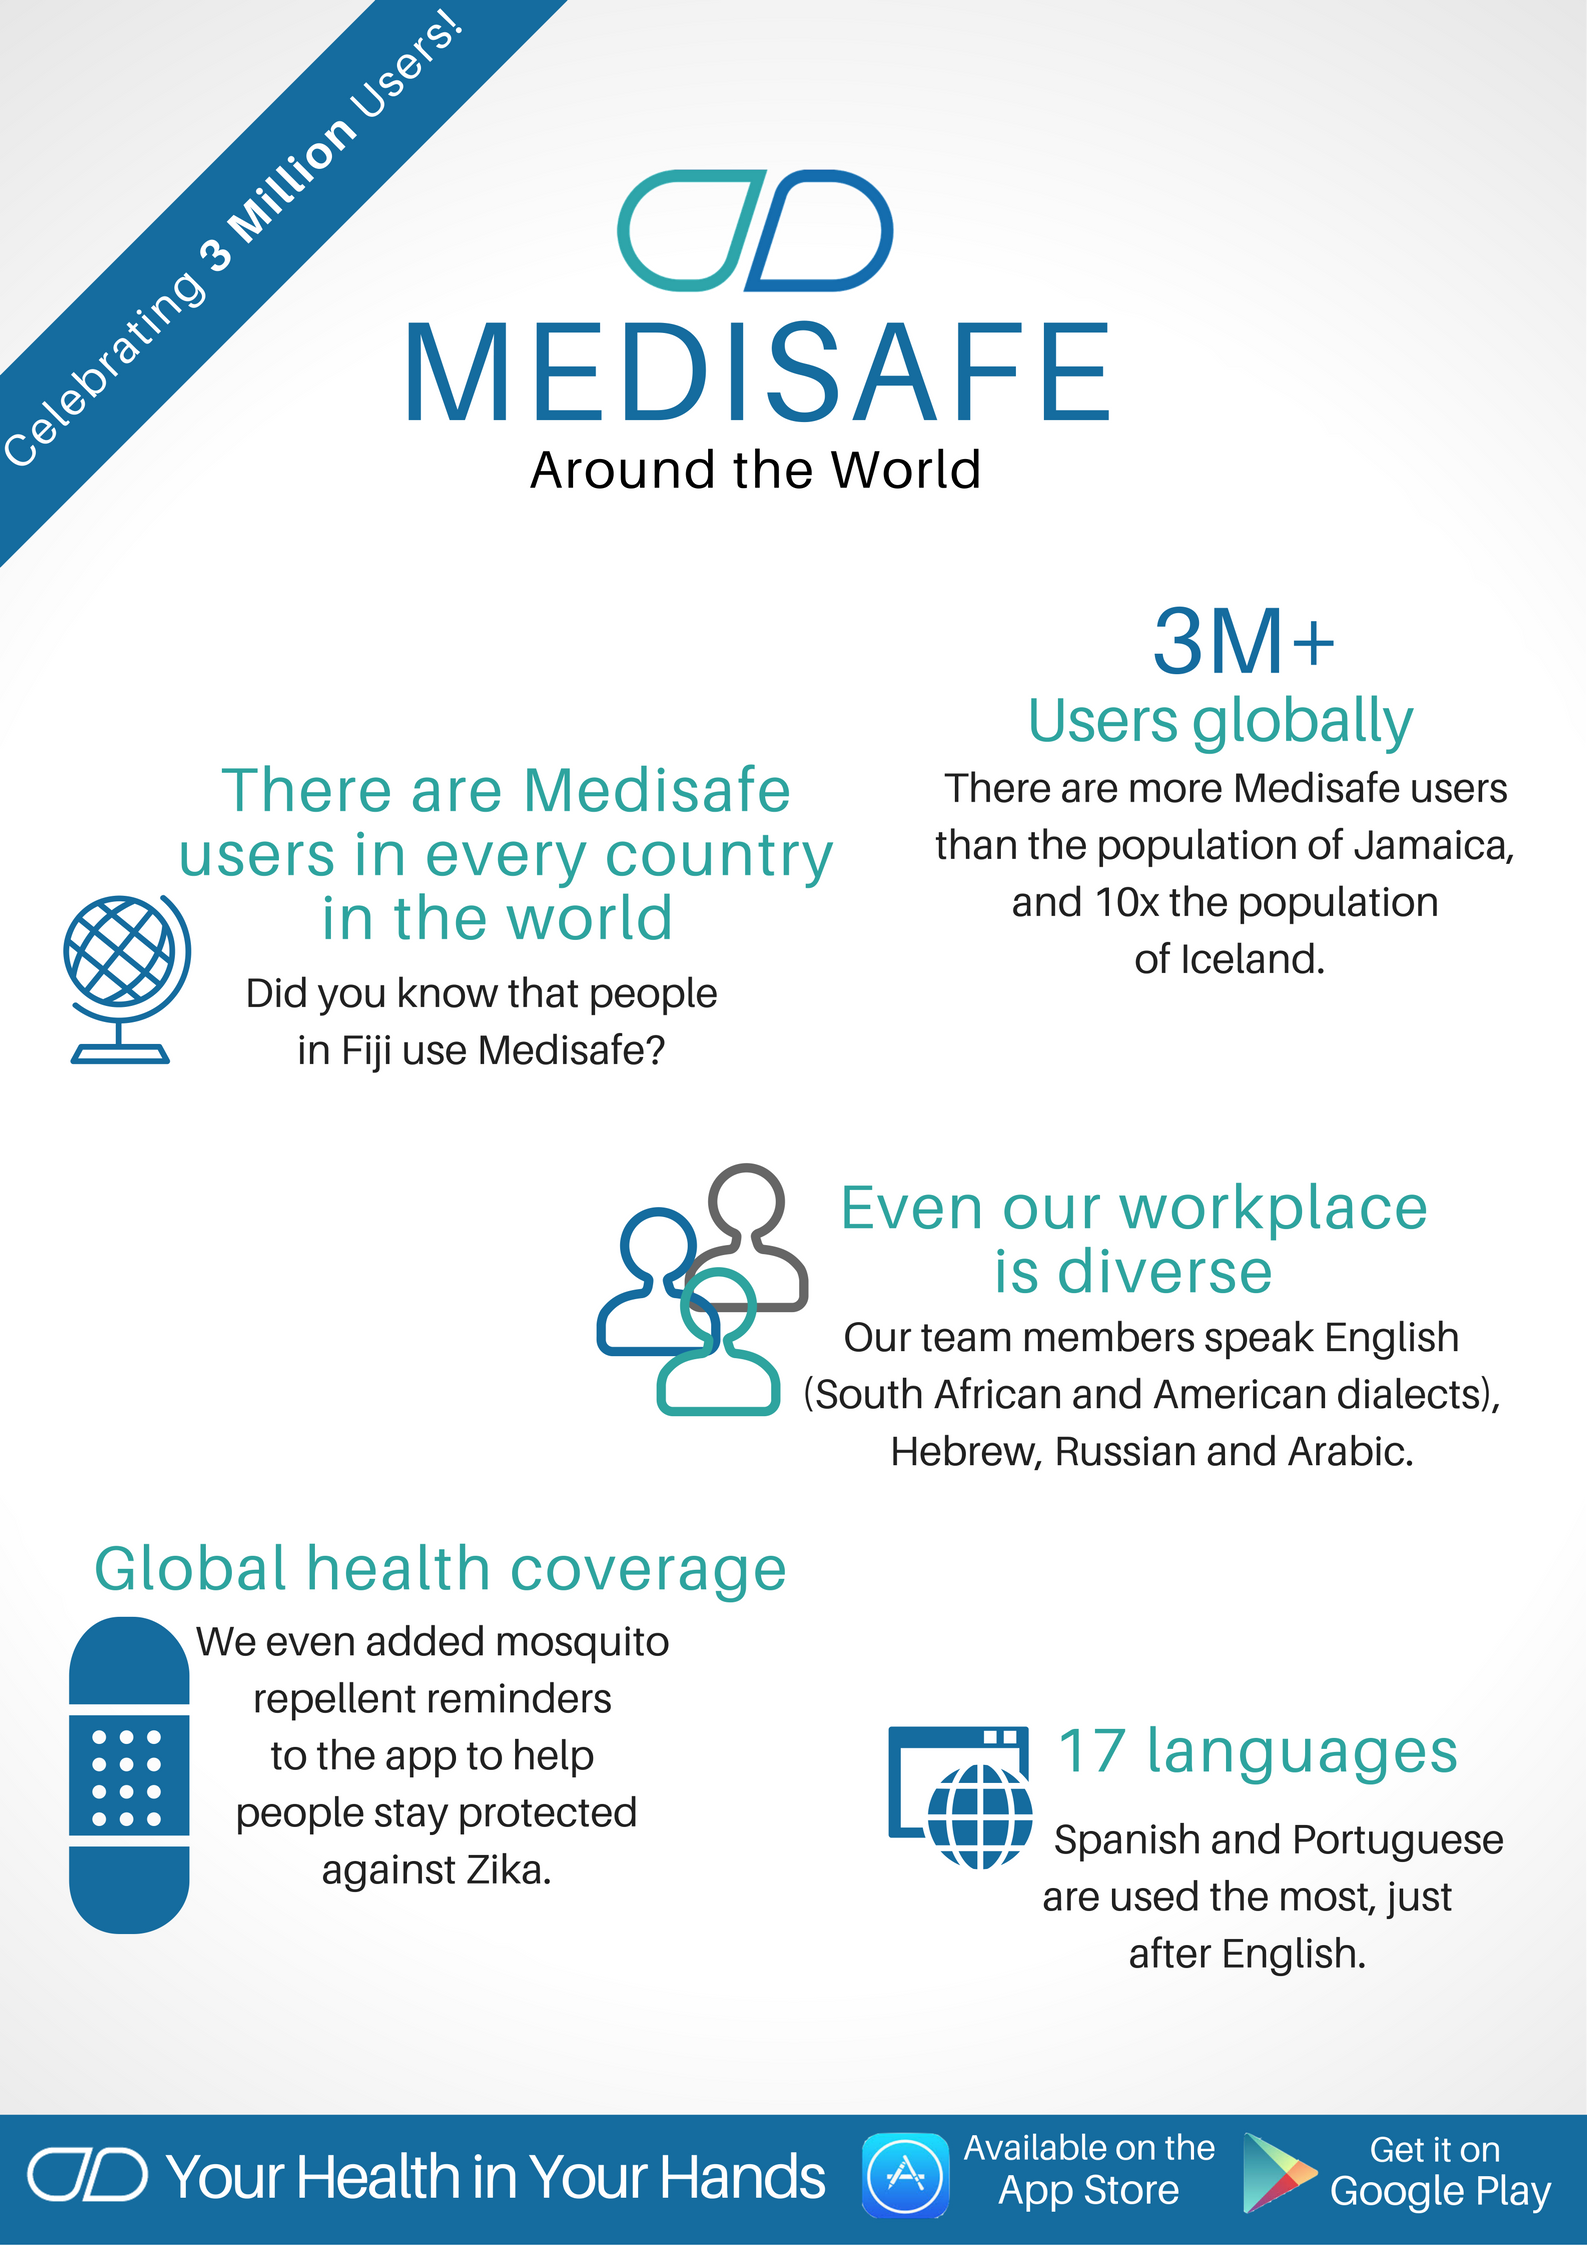 Medisafe began four years ago, Infographic